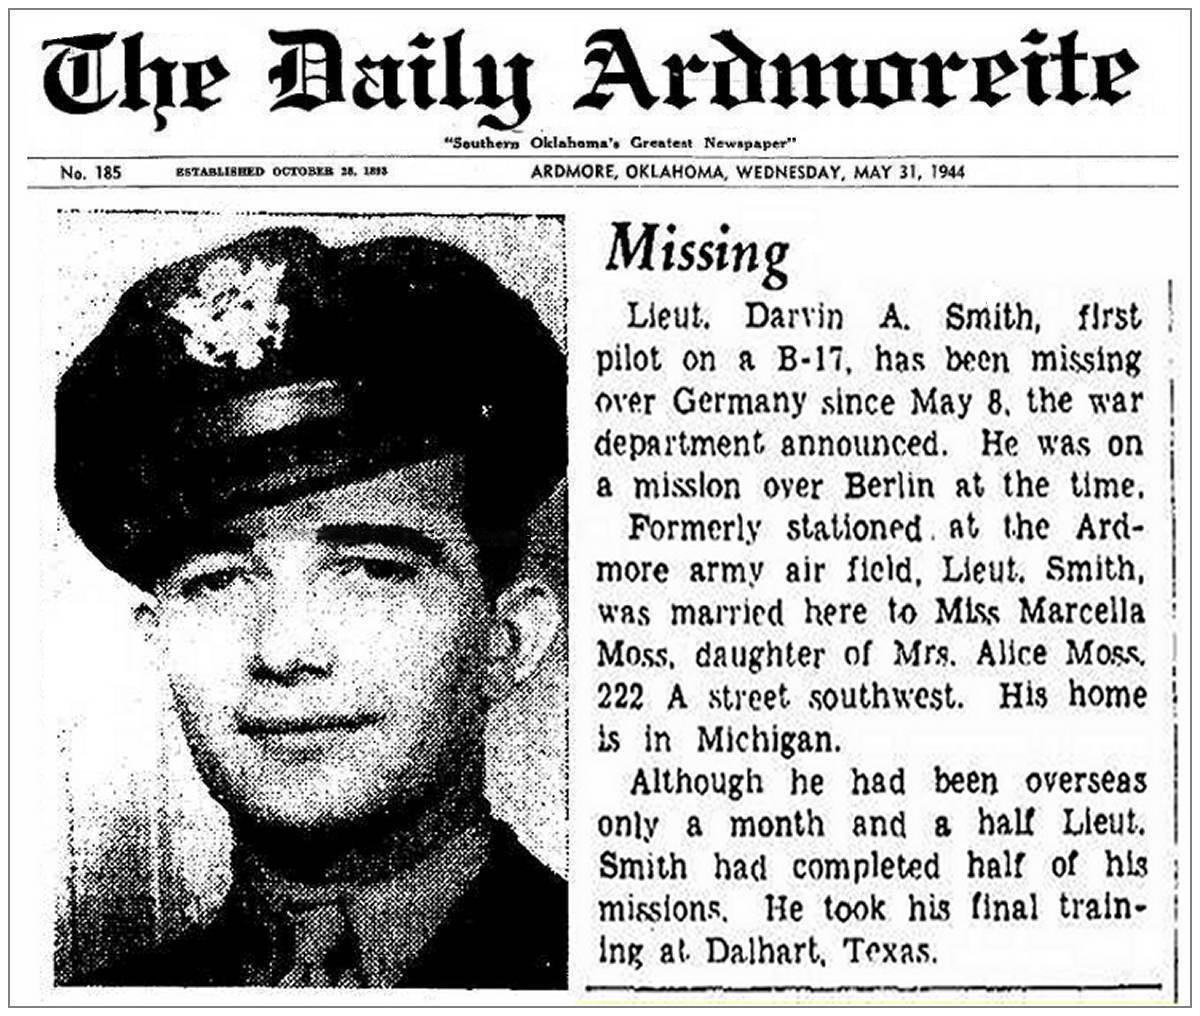 MISSING - Lt. Darvin A. Smith - The Daily Ardmoreite, OK - 31 May 1944